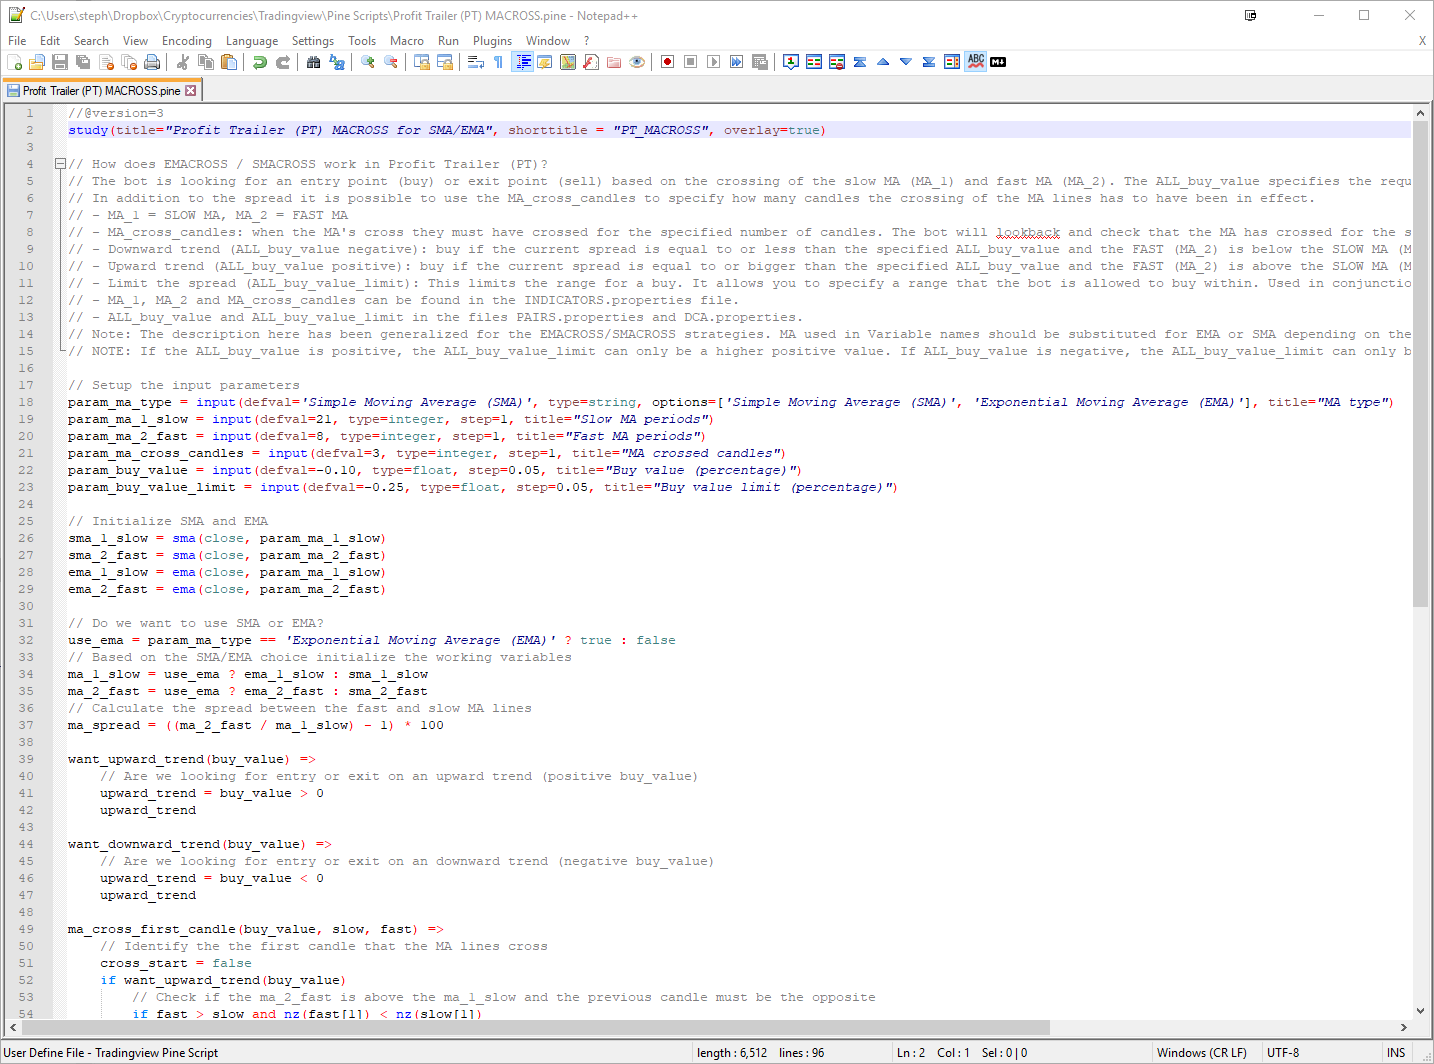 Notepad++ with Tradingview Pine Script file with syntax highlighting